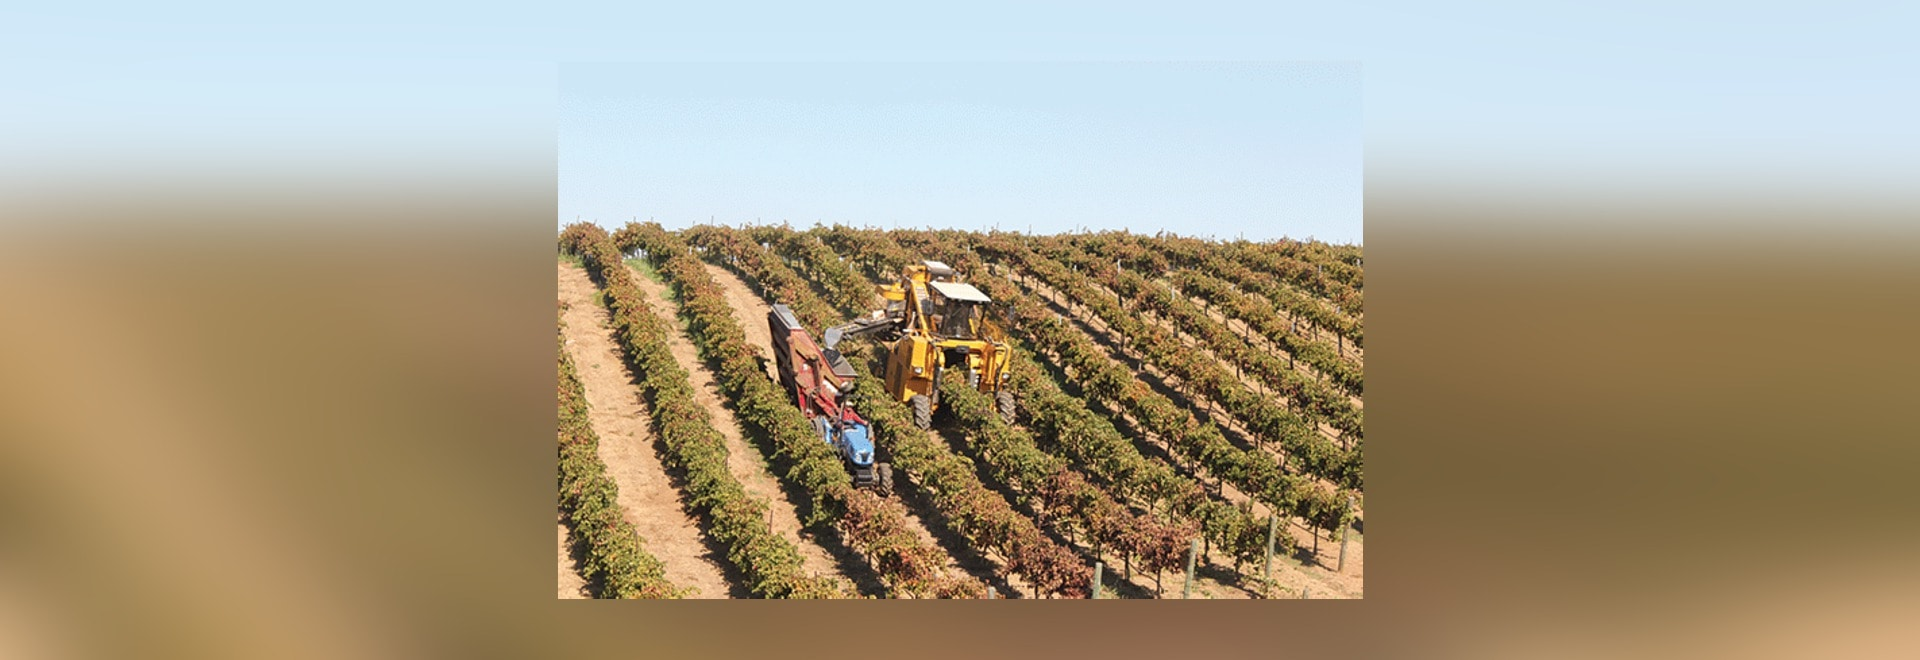 Oxbo's 6000 line of grape and olive harvesters relies on a Danfoss Plus+1 control system to control speed, torque, and power to drive wheels for maximum traction control, precise regulation of spee...